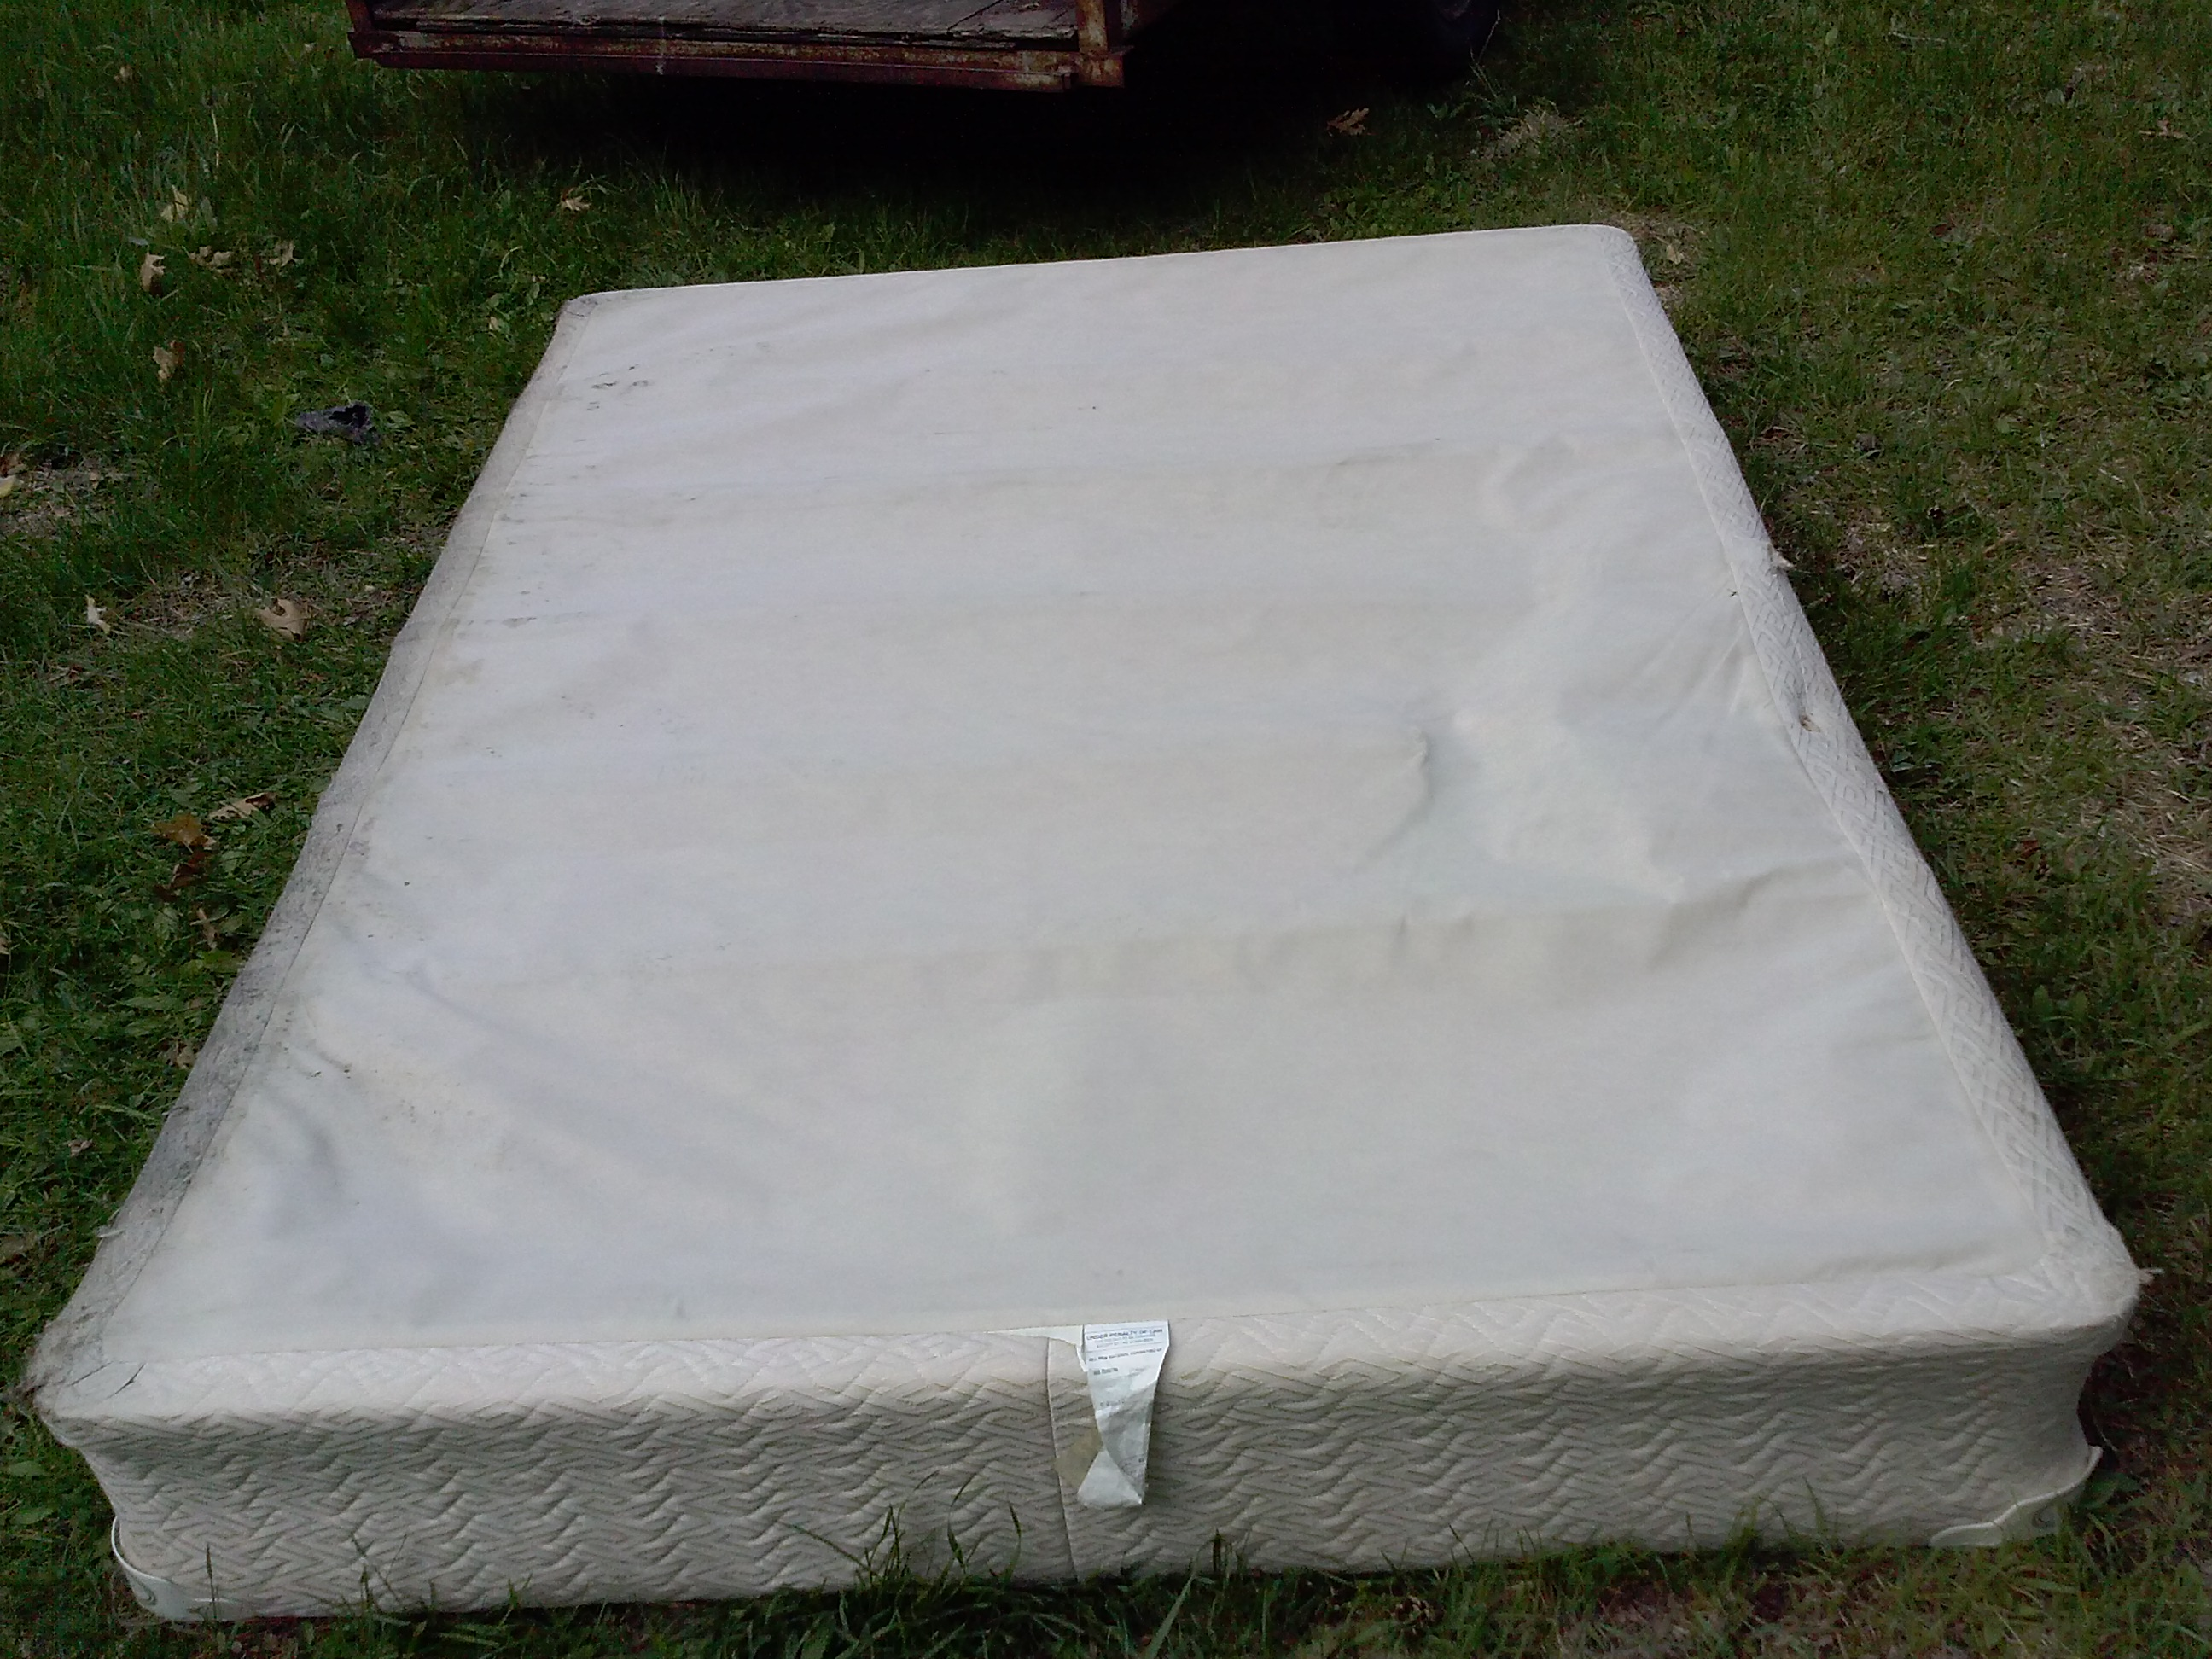 where donation mattress design refrigerator sofa nj furniture size donate full free me removal salvation of up near a charity army bed pick to donating